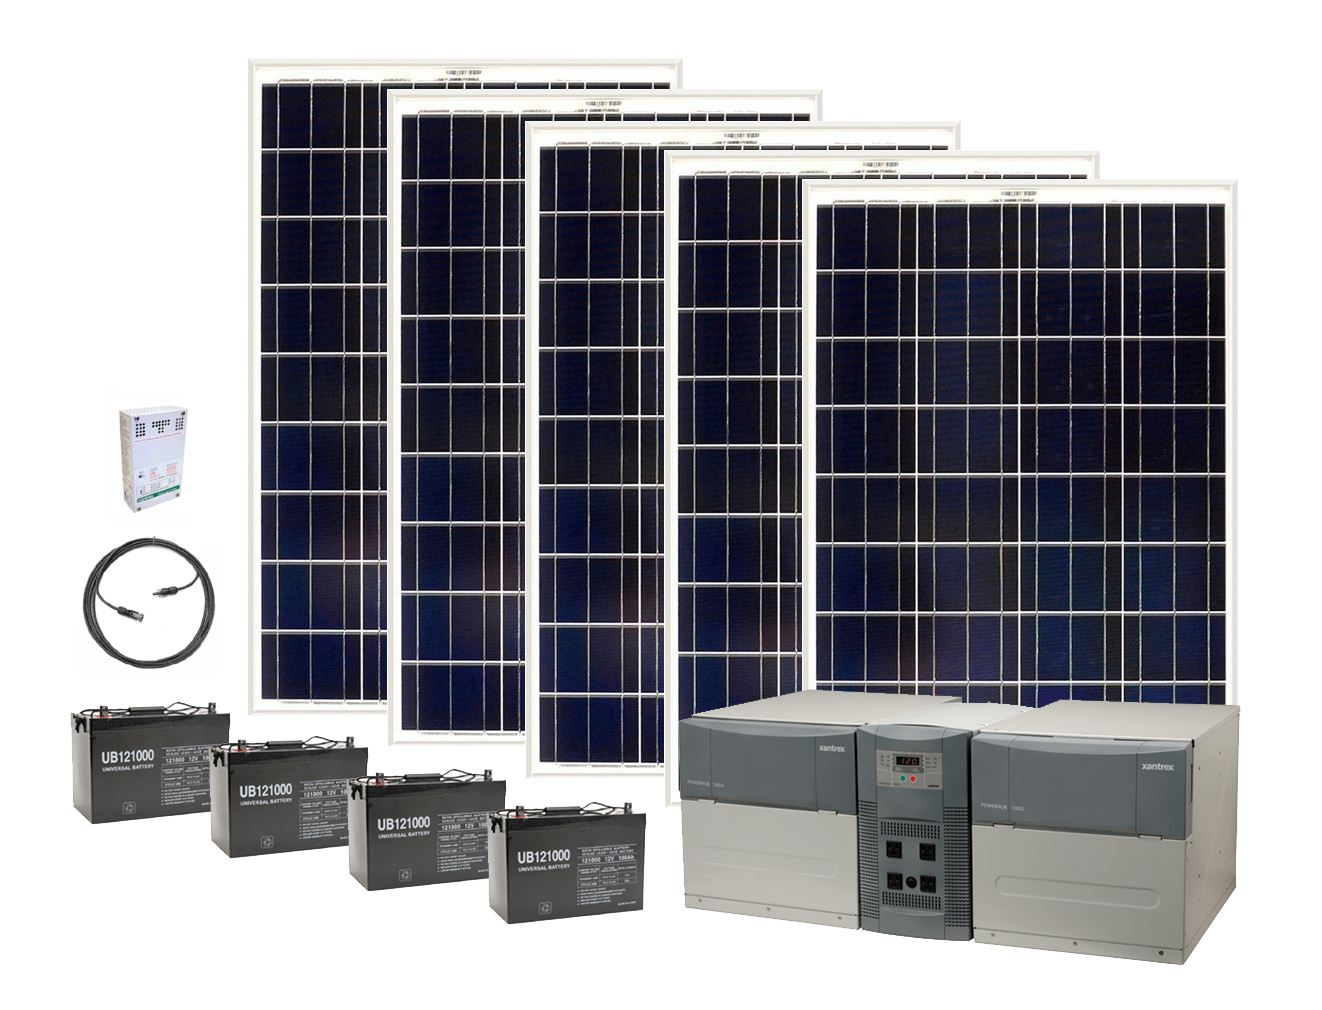 Earthtech Products Ultimate 4800 Watt Hour Solar Generator Kit With 500  Watts Of Solar Power For Homes And Off Grid. Regular Price: $2,489.00